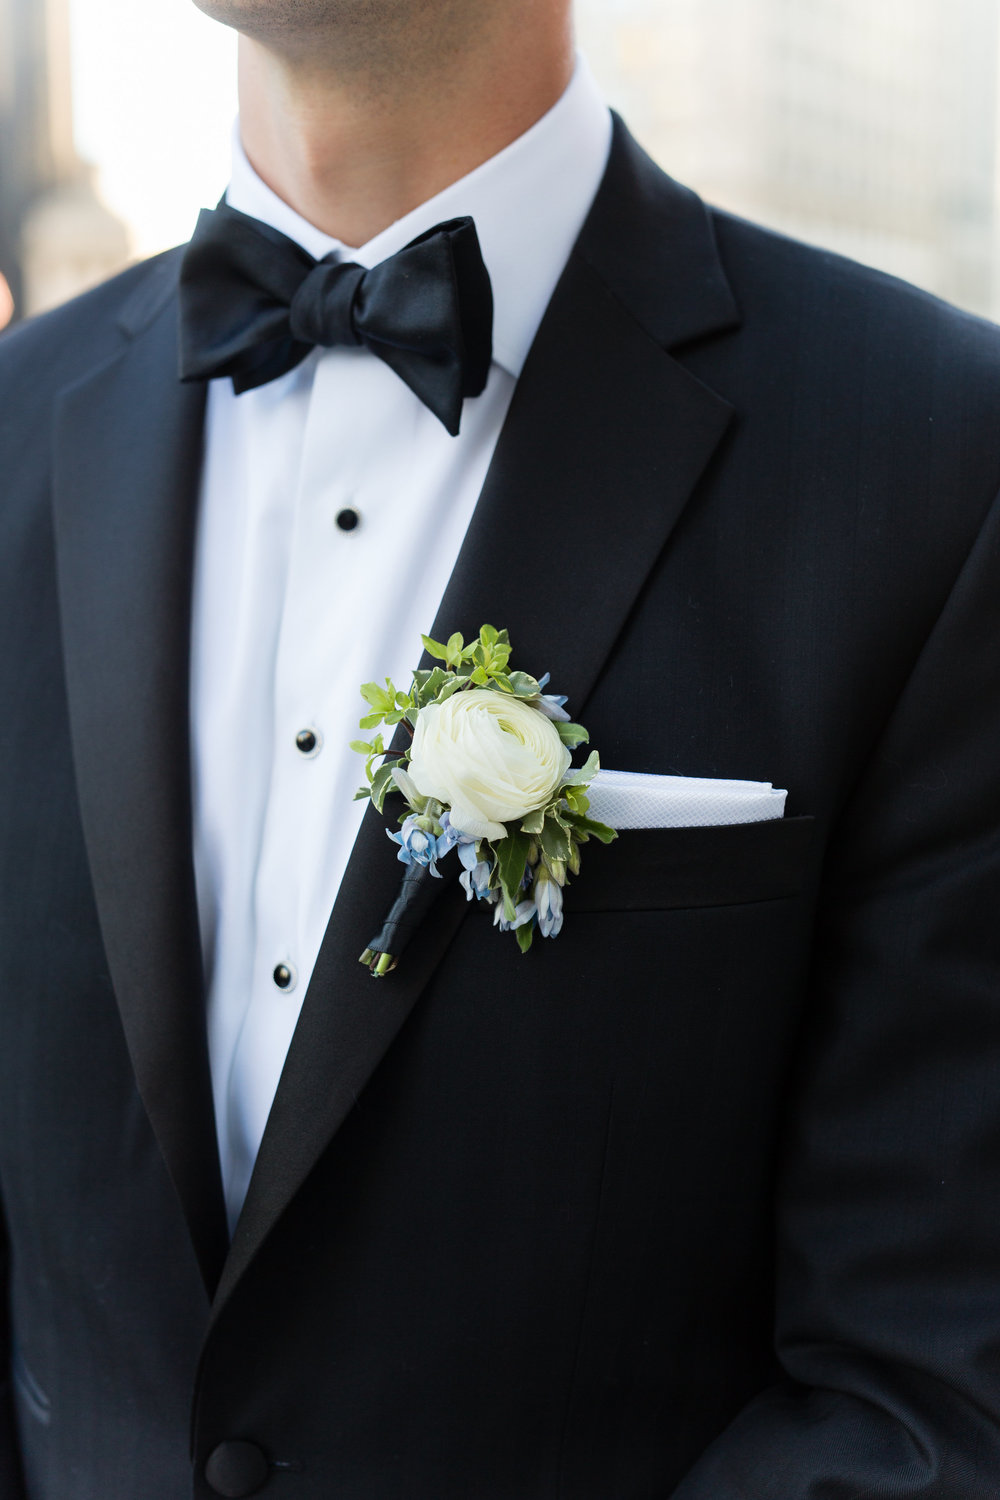 Fleur-Inc-Emilia-Jane-Photography-Estera-Events-Langham-Hotel-Chicago-Wedding-Ranunculus-Boutonniere-Tweedia